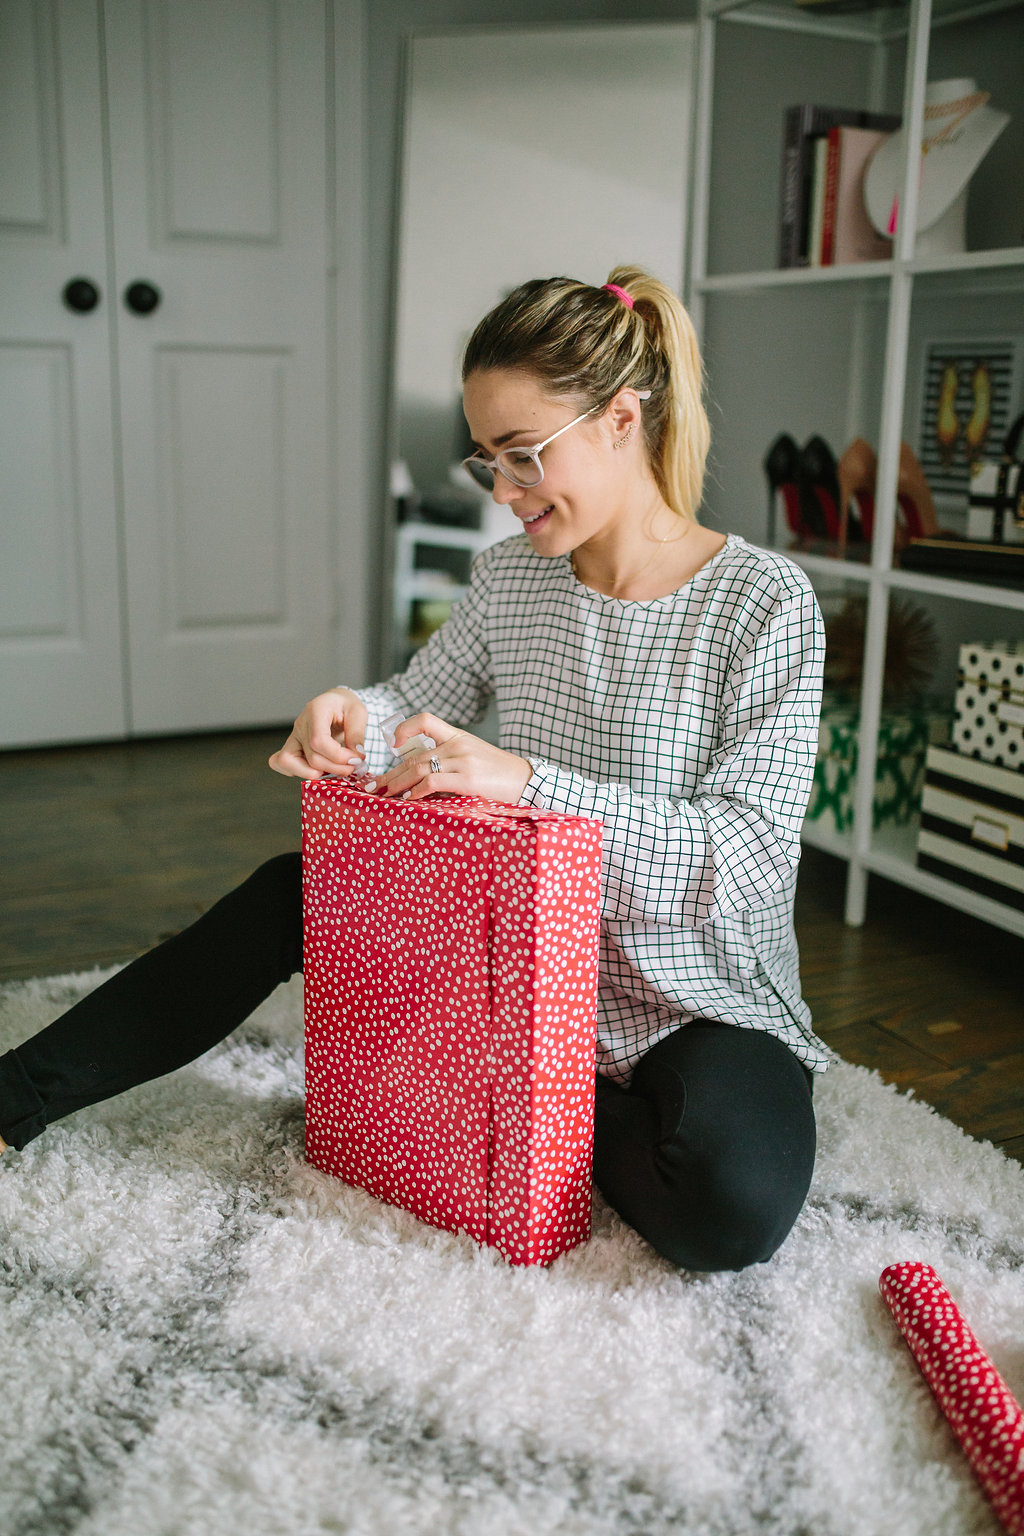 Houston Lifestyle blogger Uptown with Elly Brown shares her top 12 Holiday Gift Ideas For Him. Click here to see her picks!